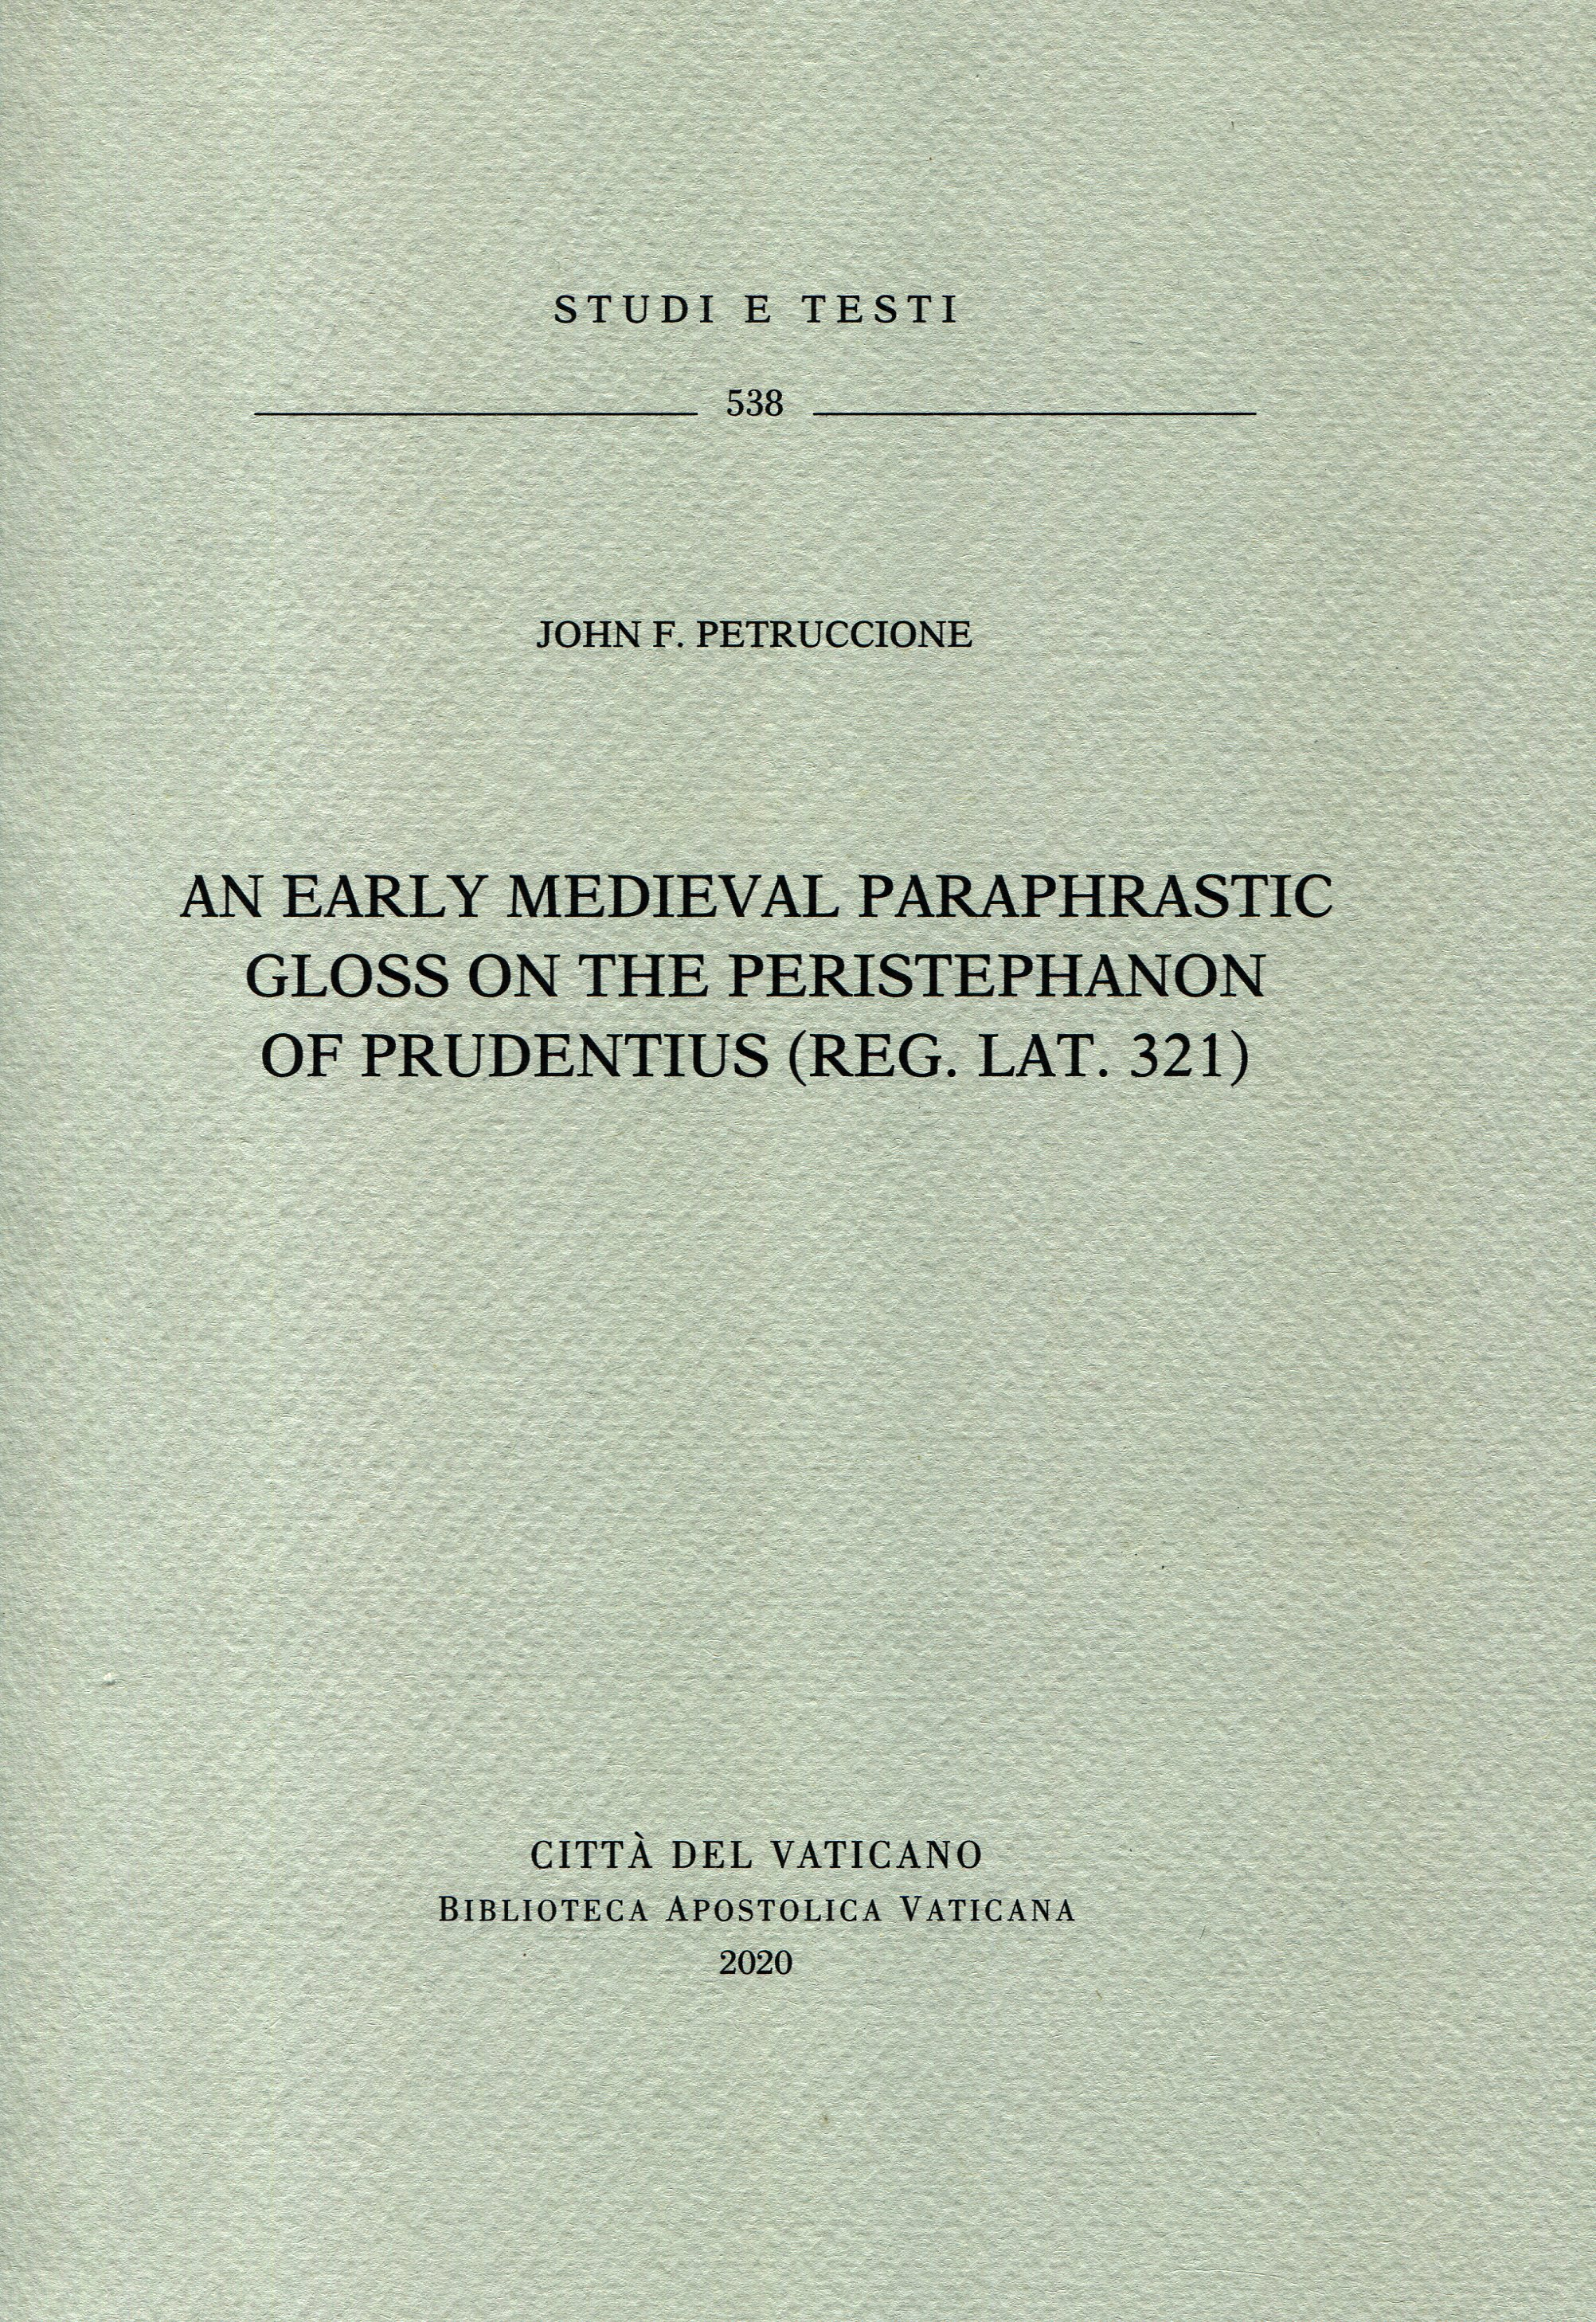 An early medieval paraphrastic gloss on the Peristephanon of Prudentius (Reg. lat. 321).